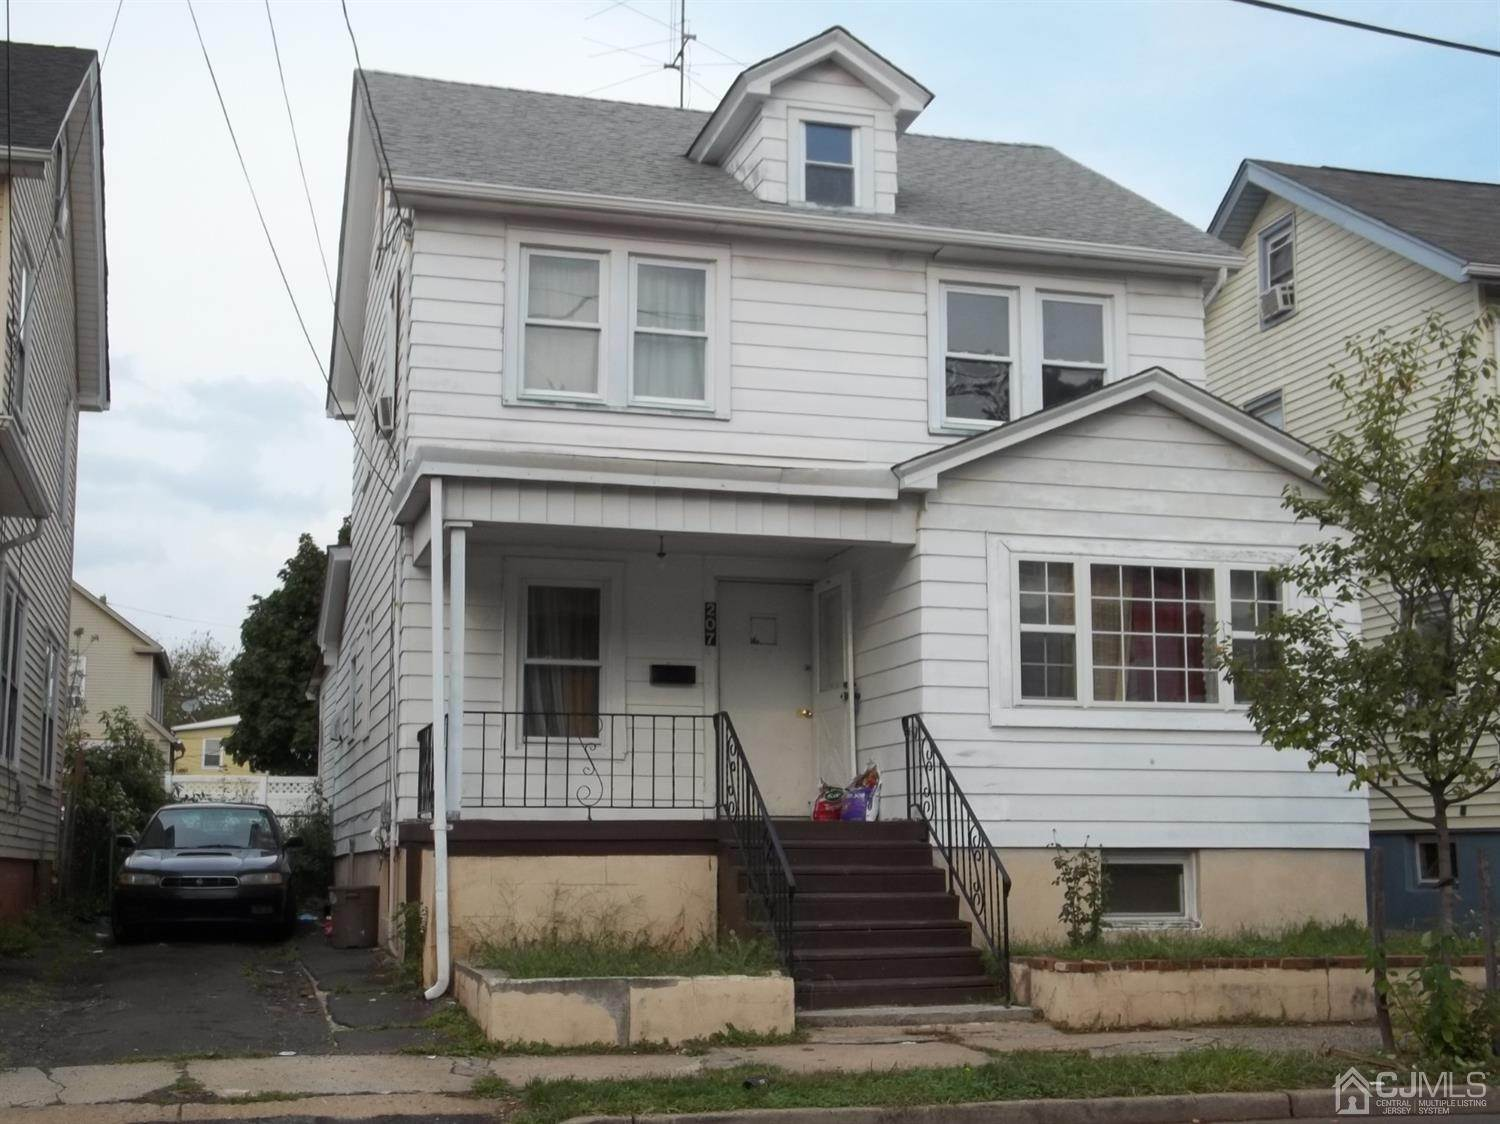 Apartments / Flats for Rent at 207 Lawrence Street New Brunswick, New Jersey, 08901 United States